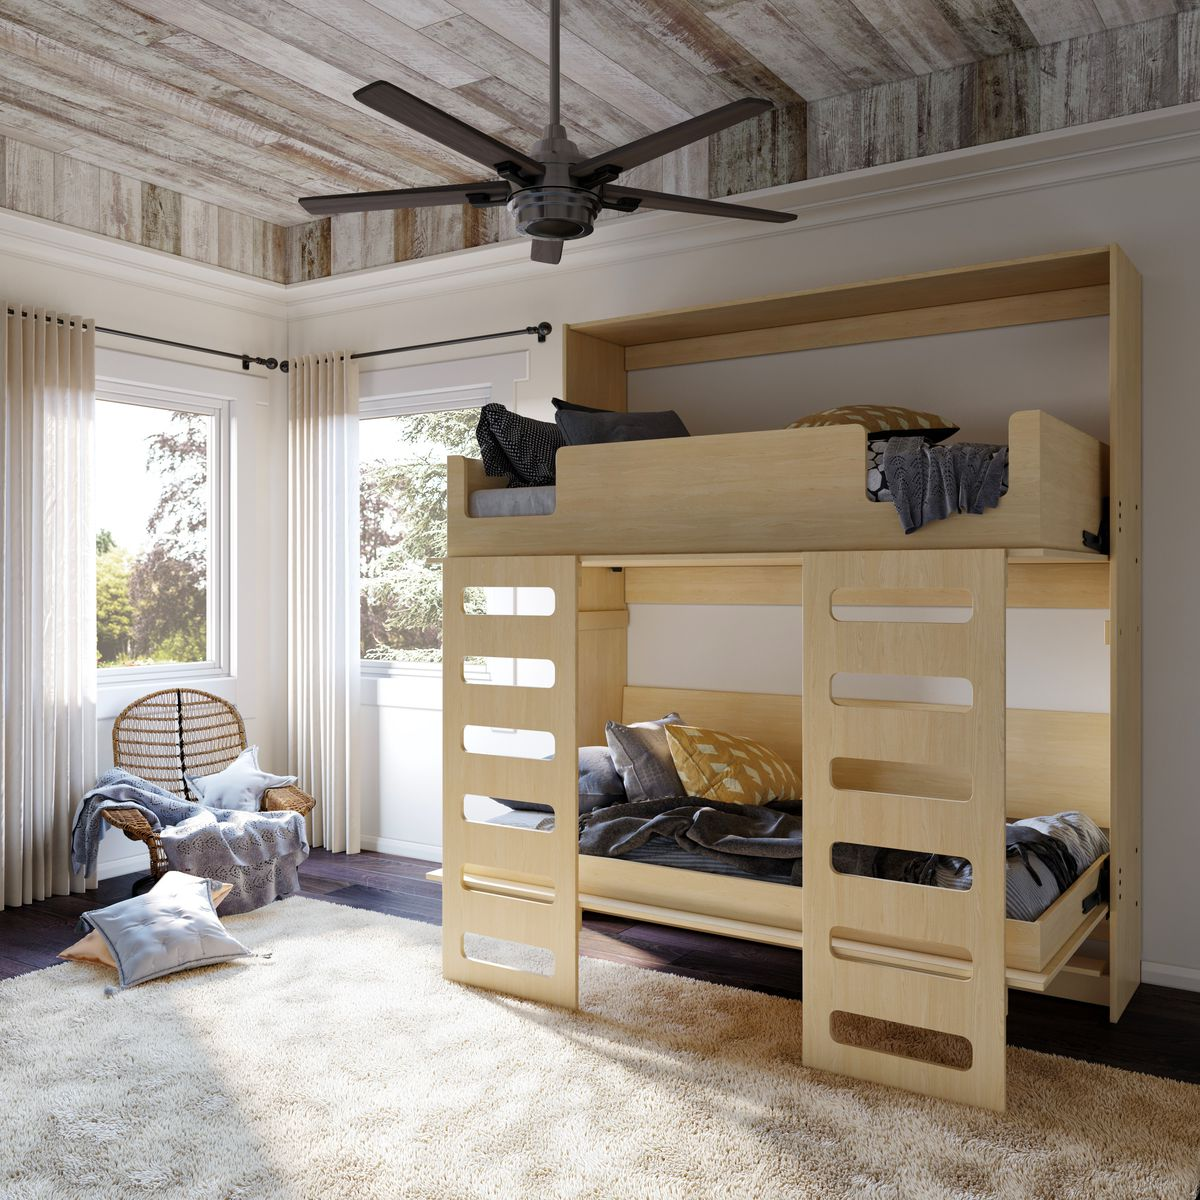 Murphy bed open with bunk-style beds.